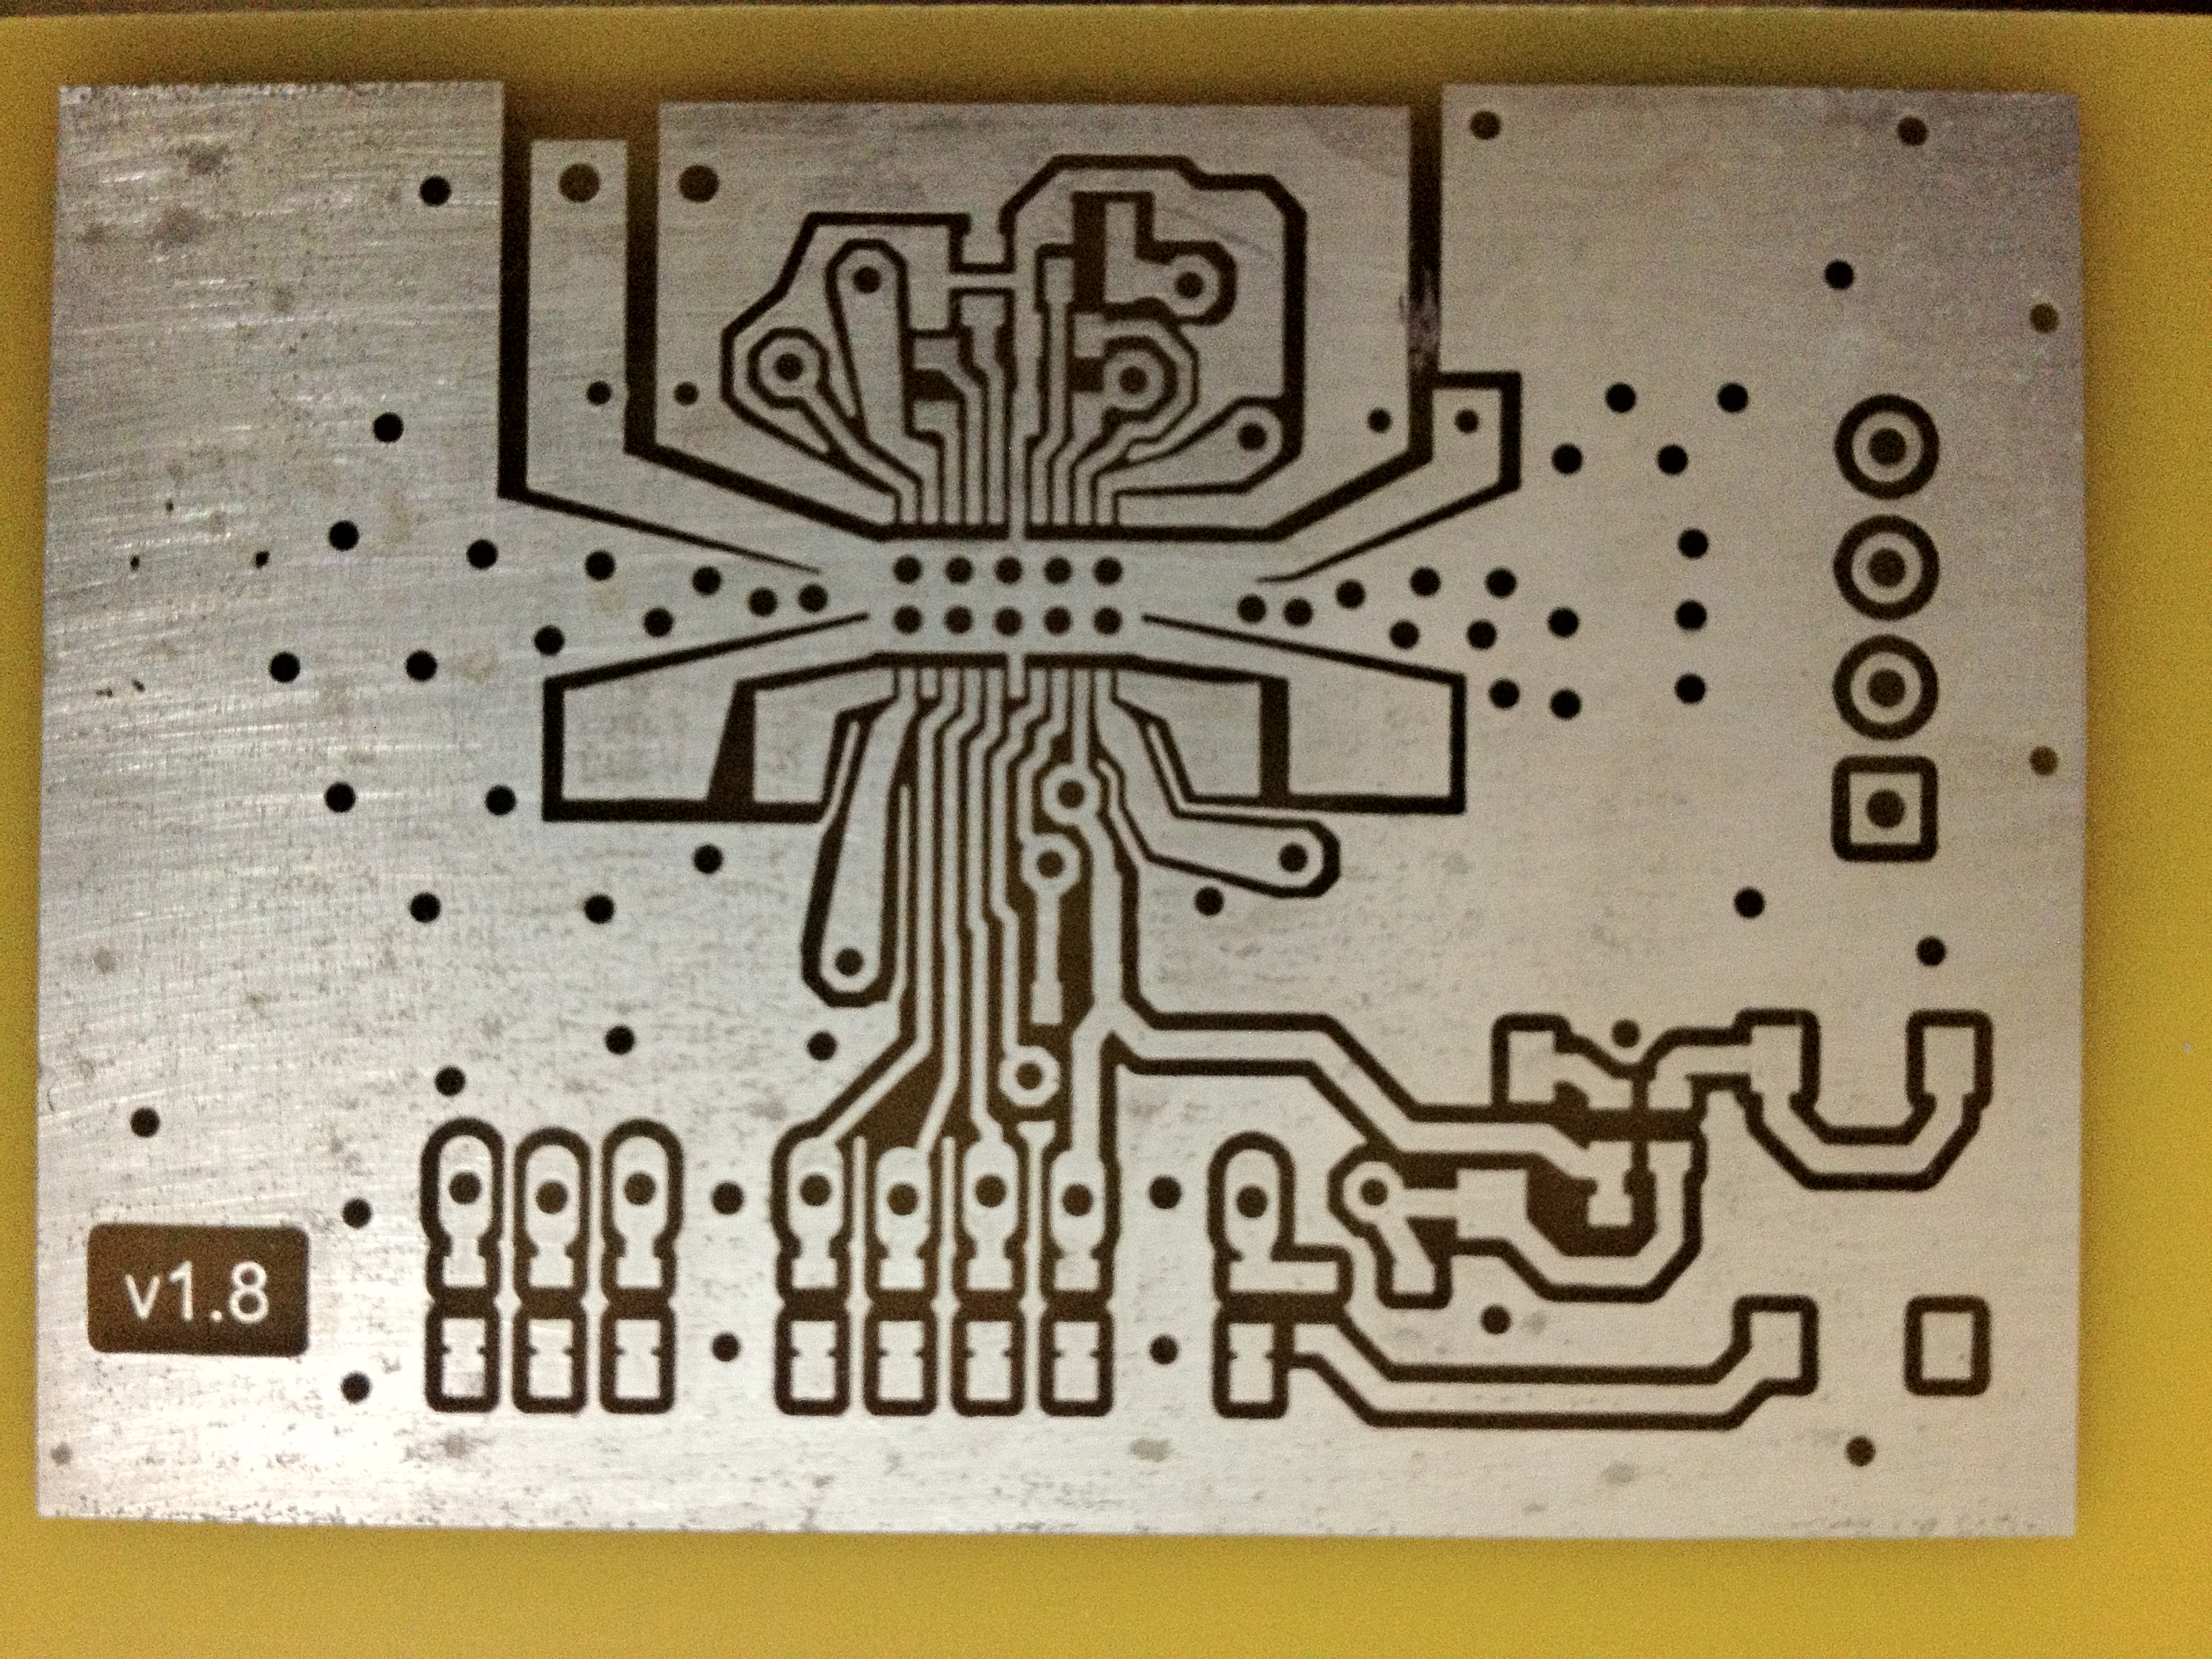 Perfect Single Or Double Sided Pcbs With The Toner Transfer Method You Have To Clean And Sand Top Bottom Of Circuitboard This Is An Earlier Version My A3987 Stepper Driver Board 50v 15a After Tinning Pads On Chip About 10 Mil Spacing